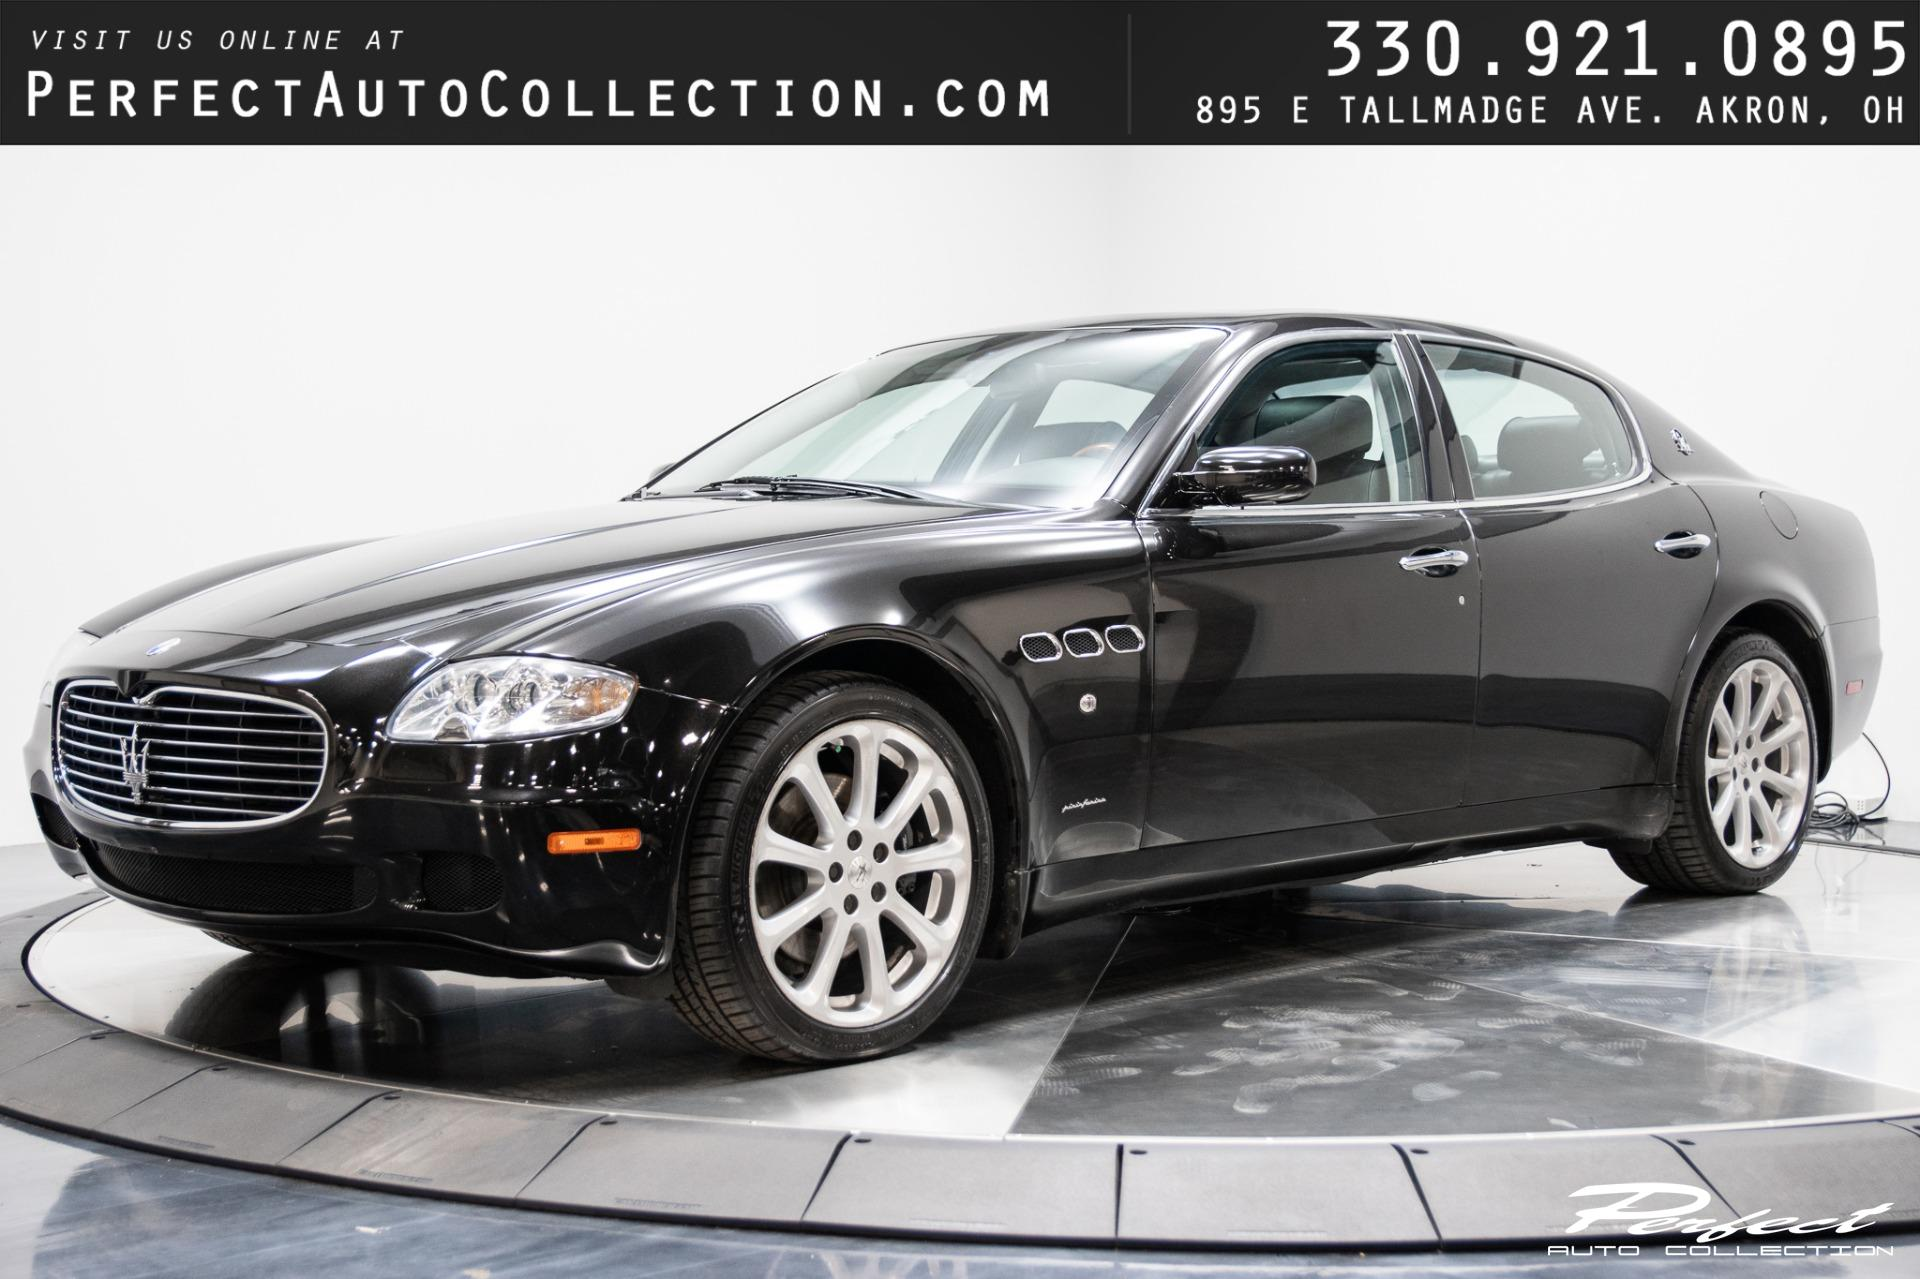 Used 2006 Maserati Quattroporte Base for sale $17,493 at Perfect Auto Collection in Akron OH 44310 1